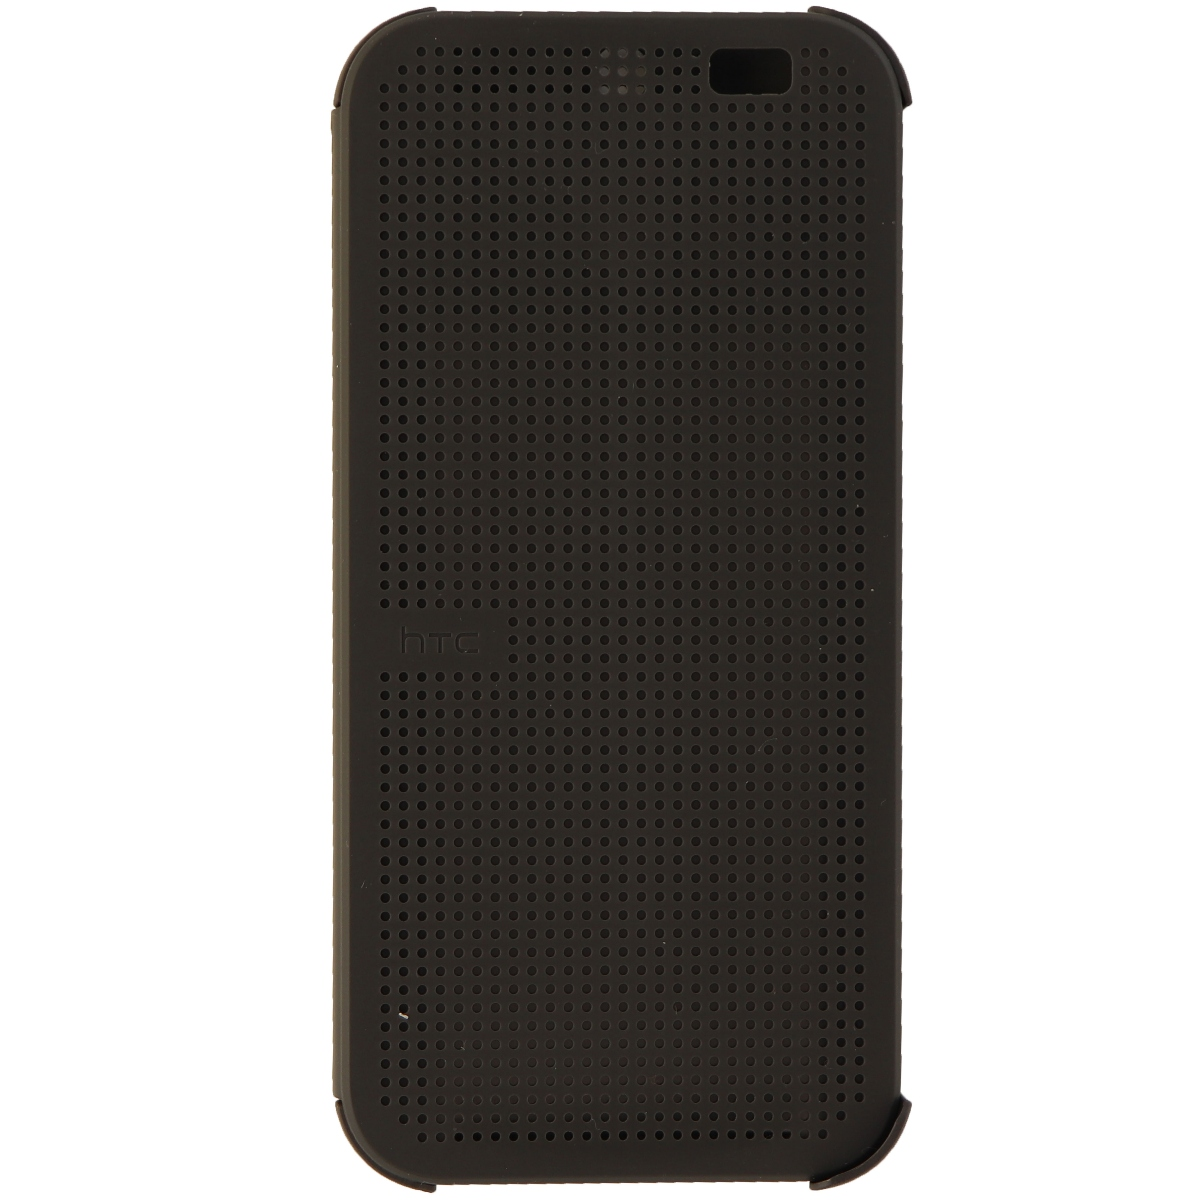 Verizon Wireless HTC Dot View Protective Case Cover for The HTC M8 - Gray